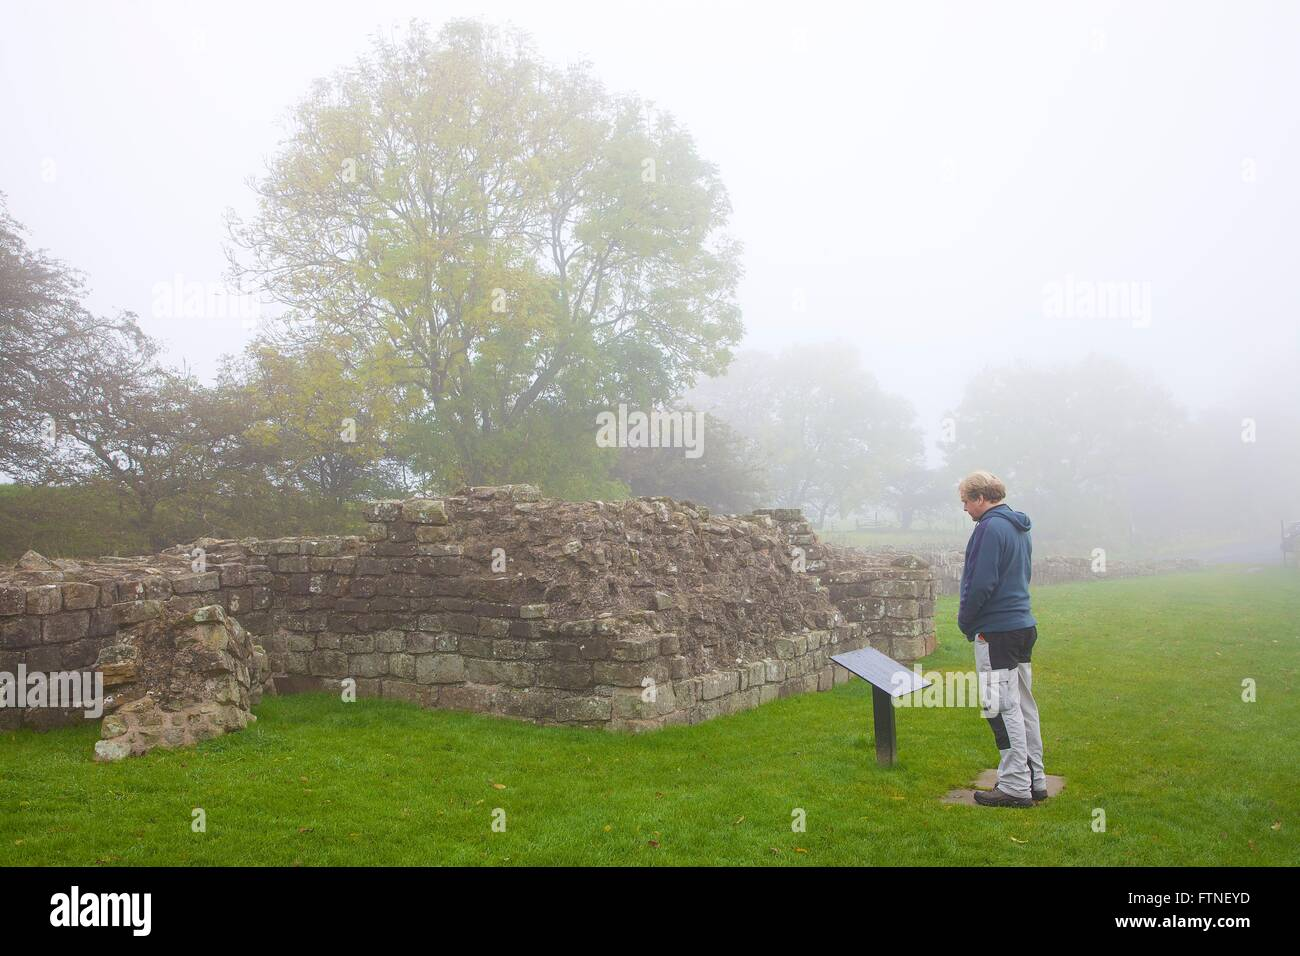 Hadrian's Wall. Tourist looking at Turret 52A in fog. Banks, Cumbria, England, United Kingdom, Europe. - Stock Image